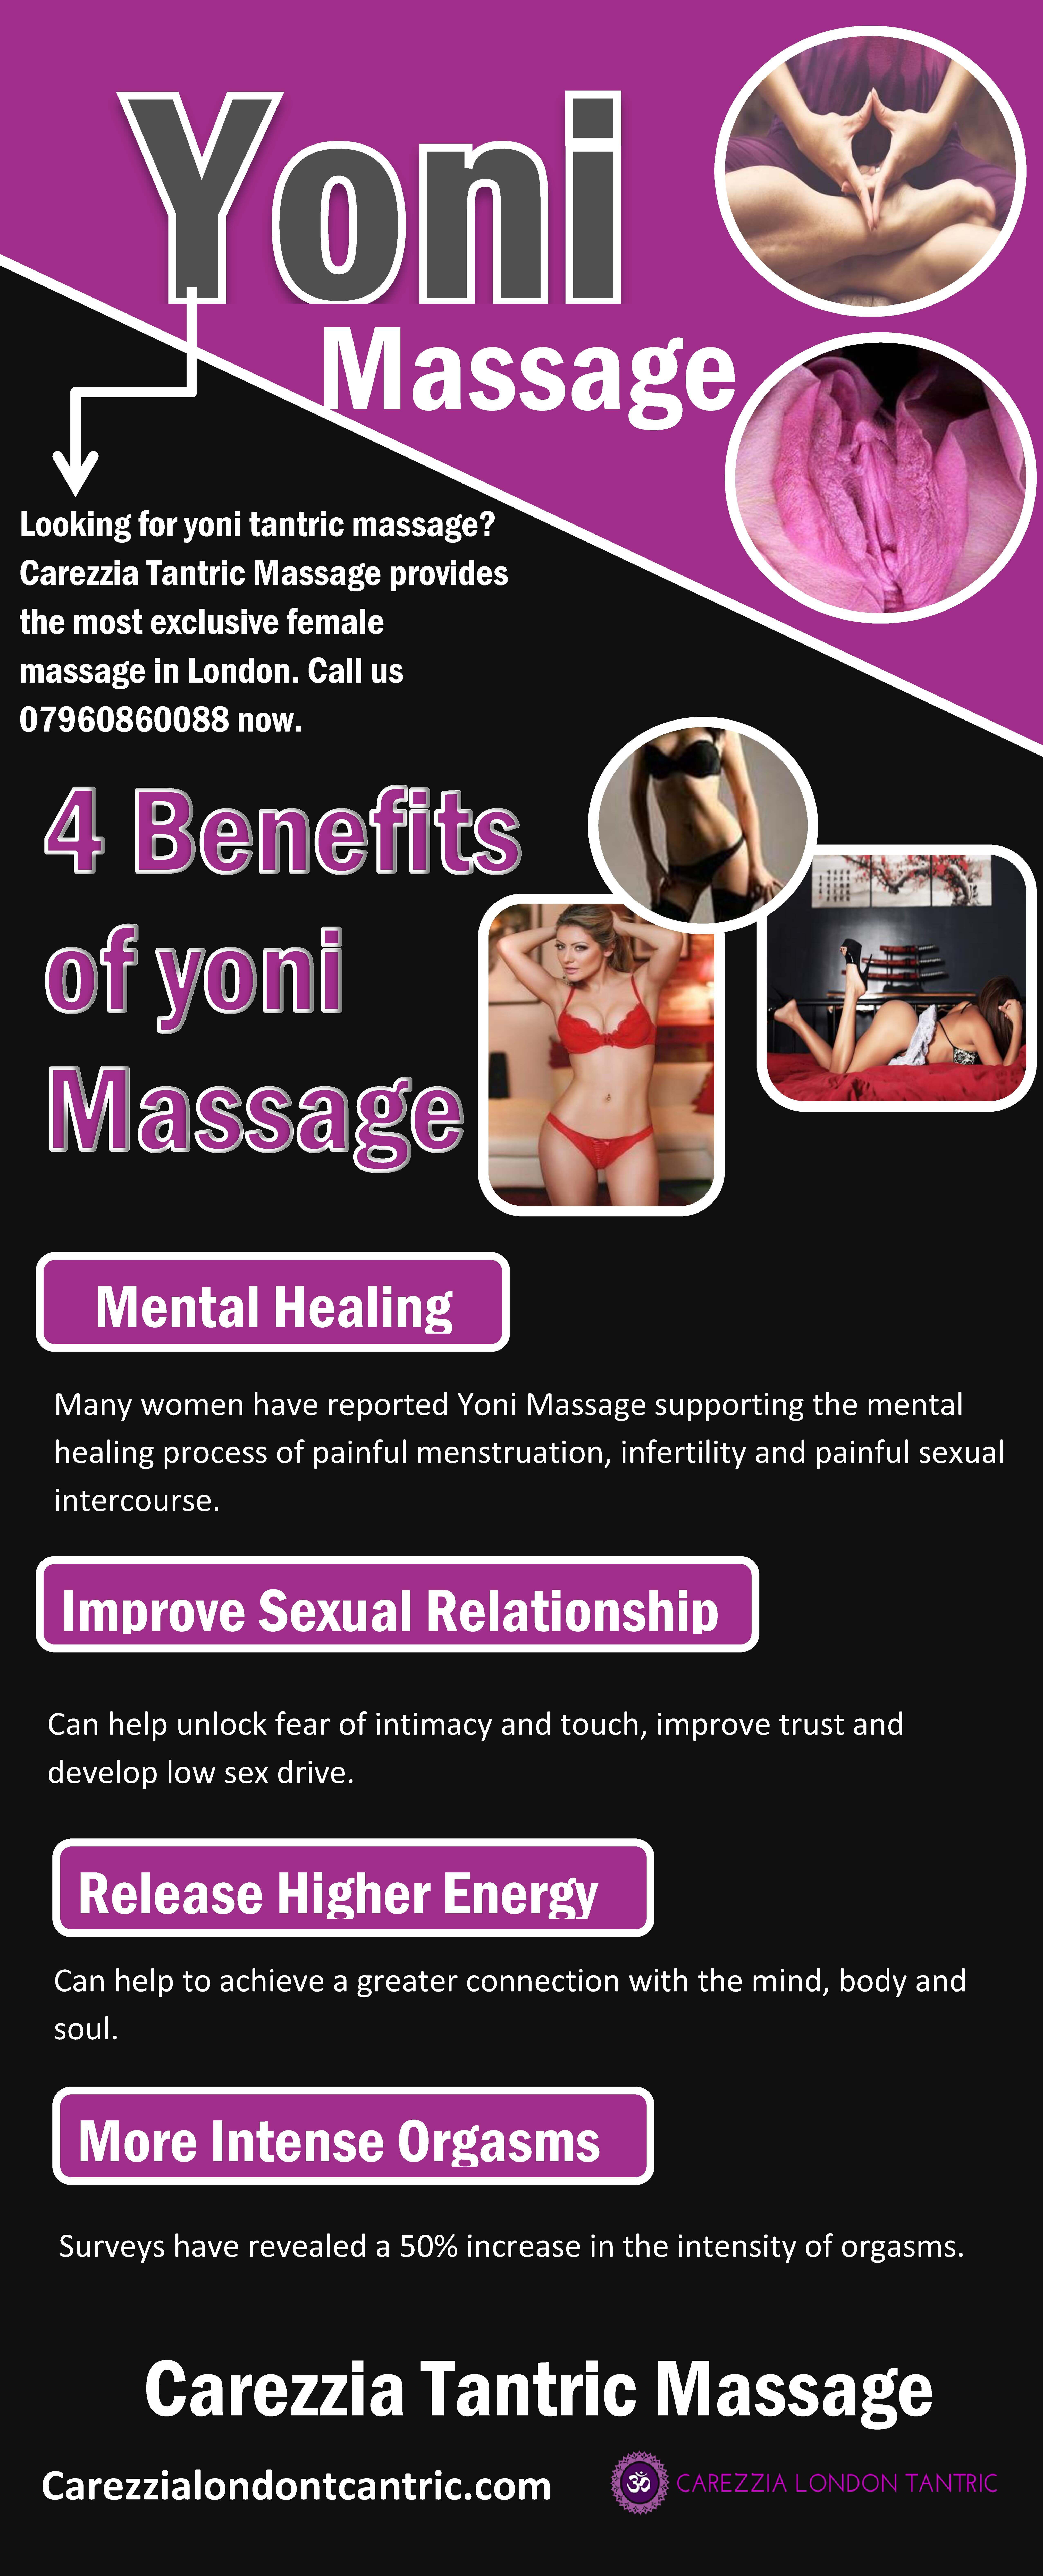 How to give yoni massage